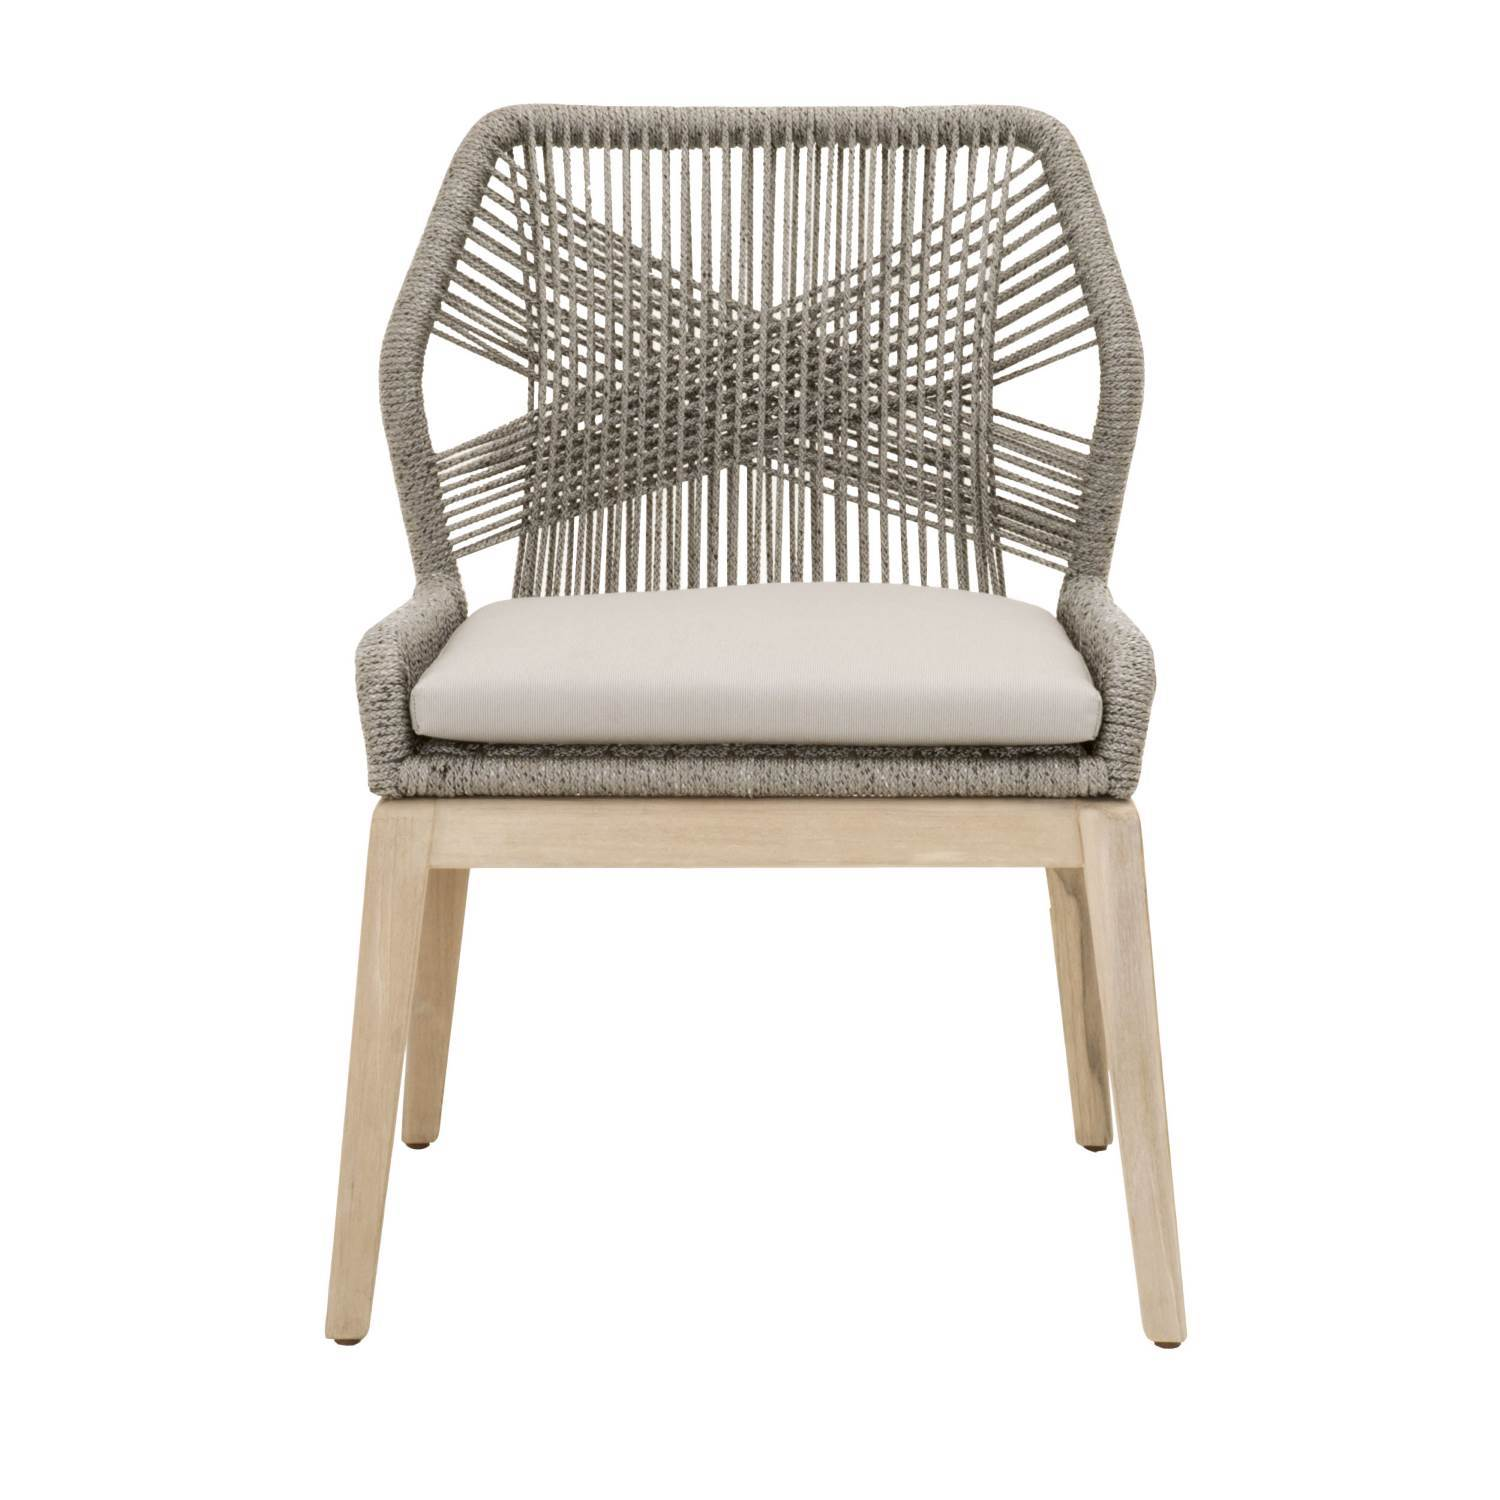 Loom Outdoor Dining Chair (Set of 2) in Platinum Rope